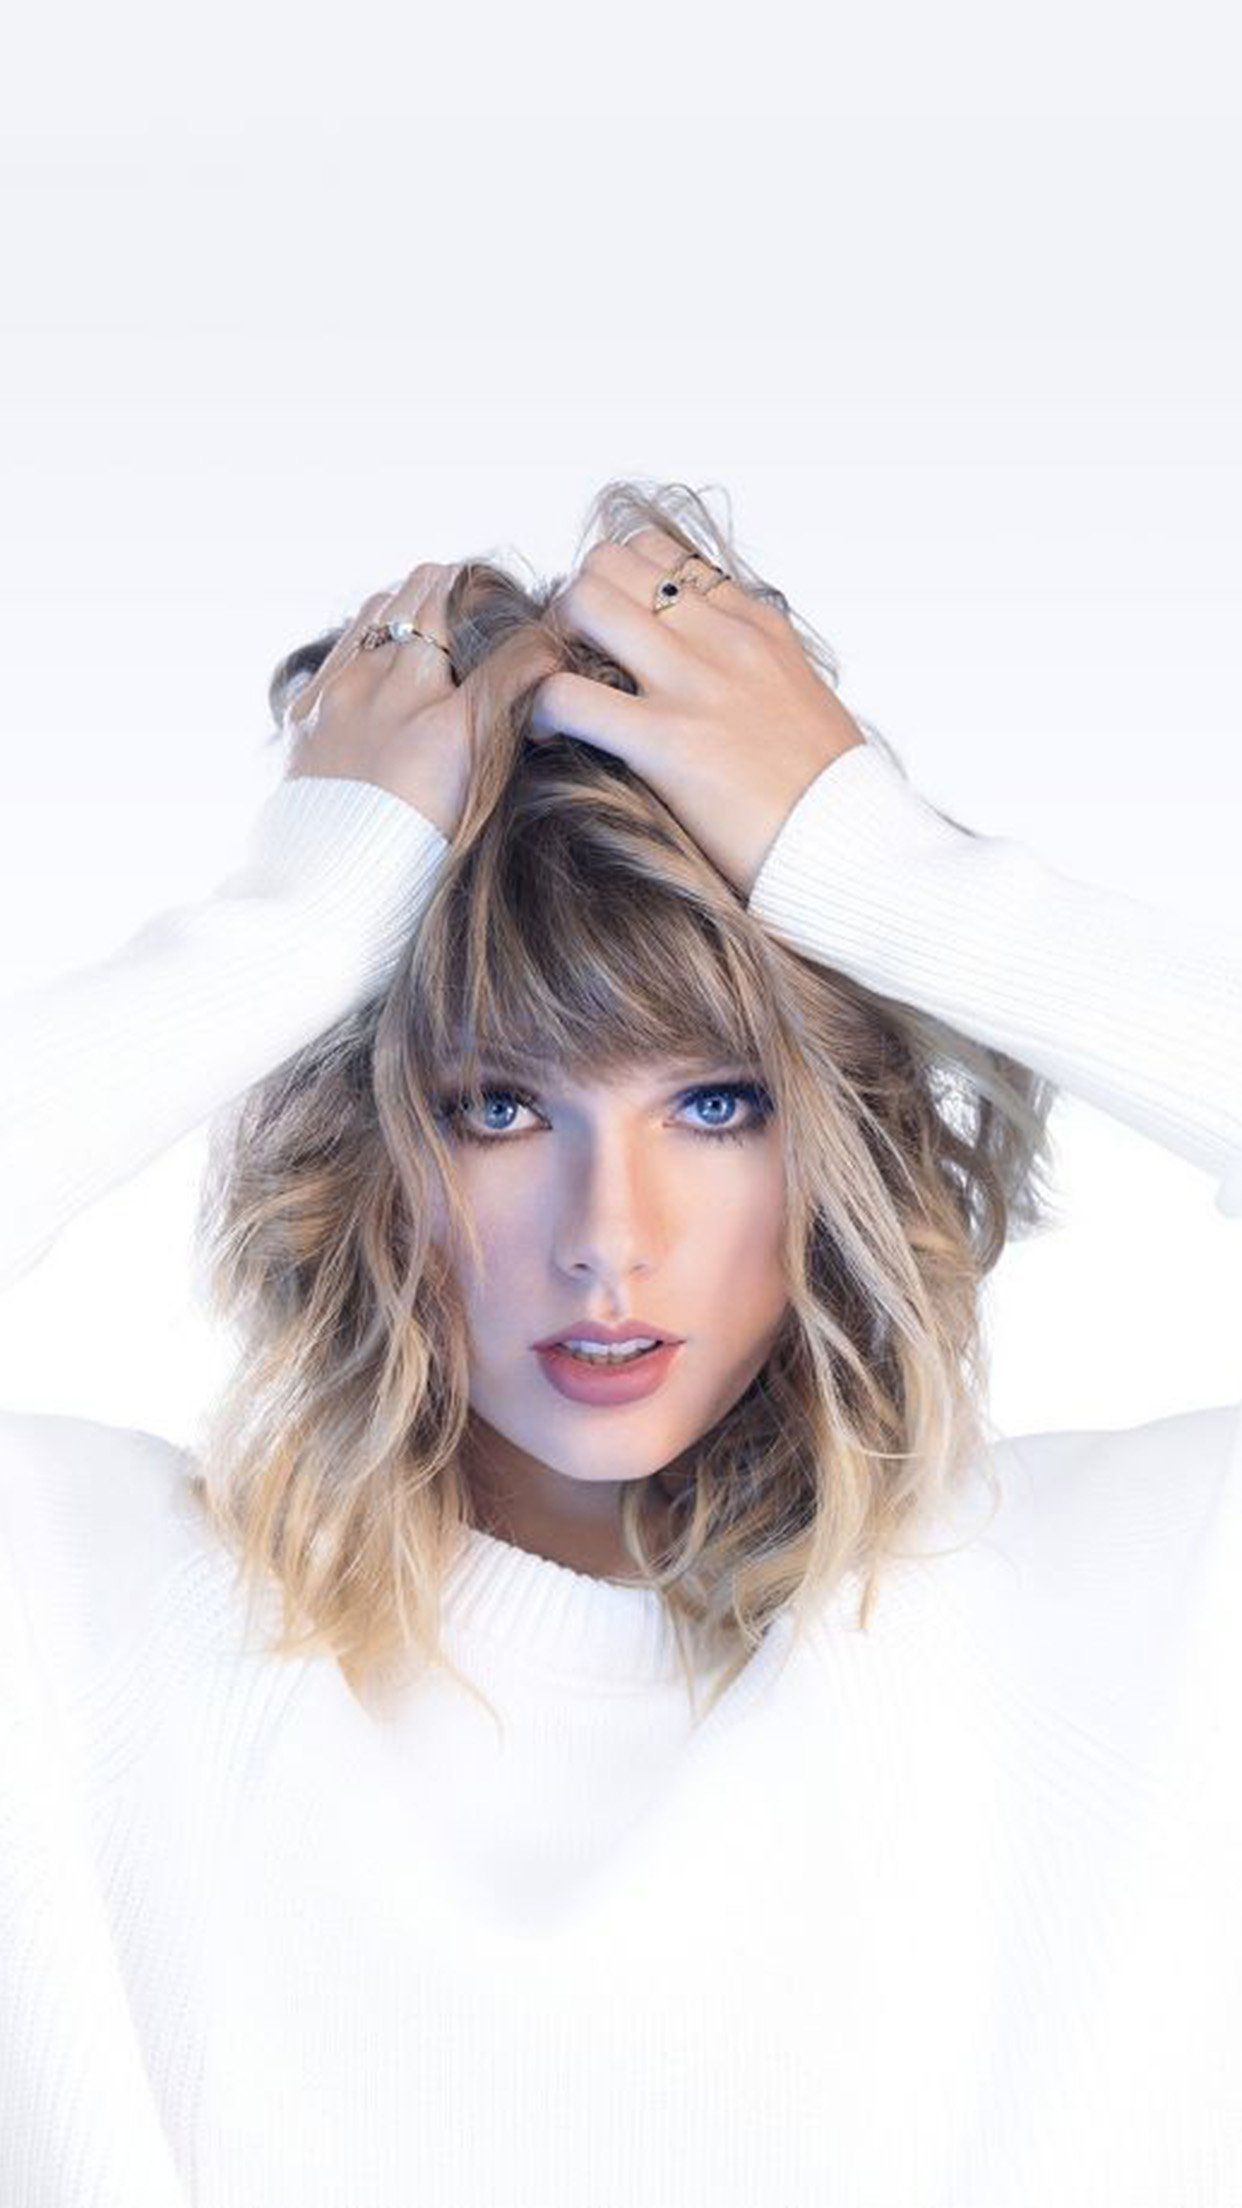 Taylor Swift Iphone Wallpapers Top Free Taylor Swift Iphone Backgrounds Wallpaperaccess